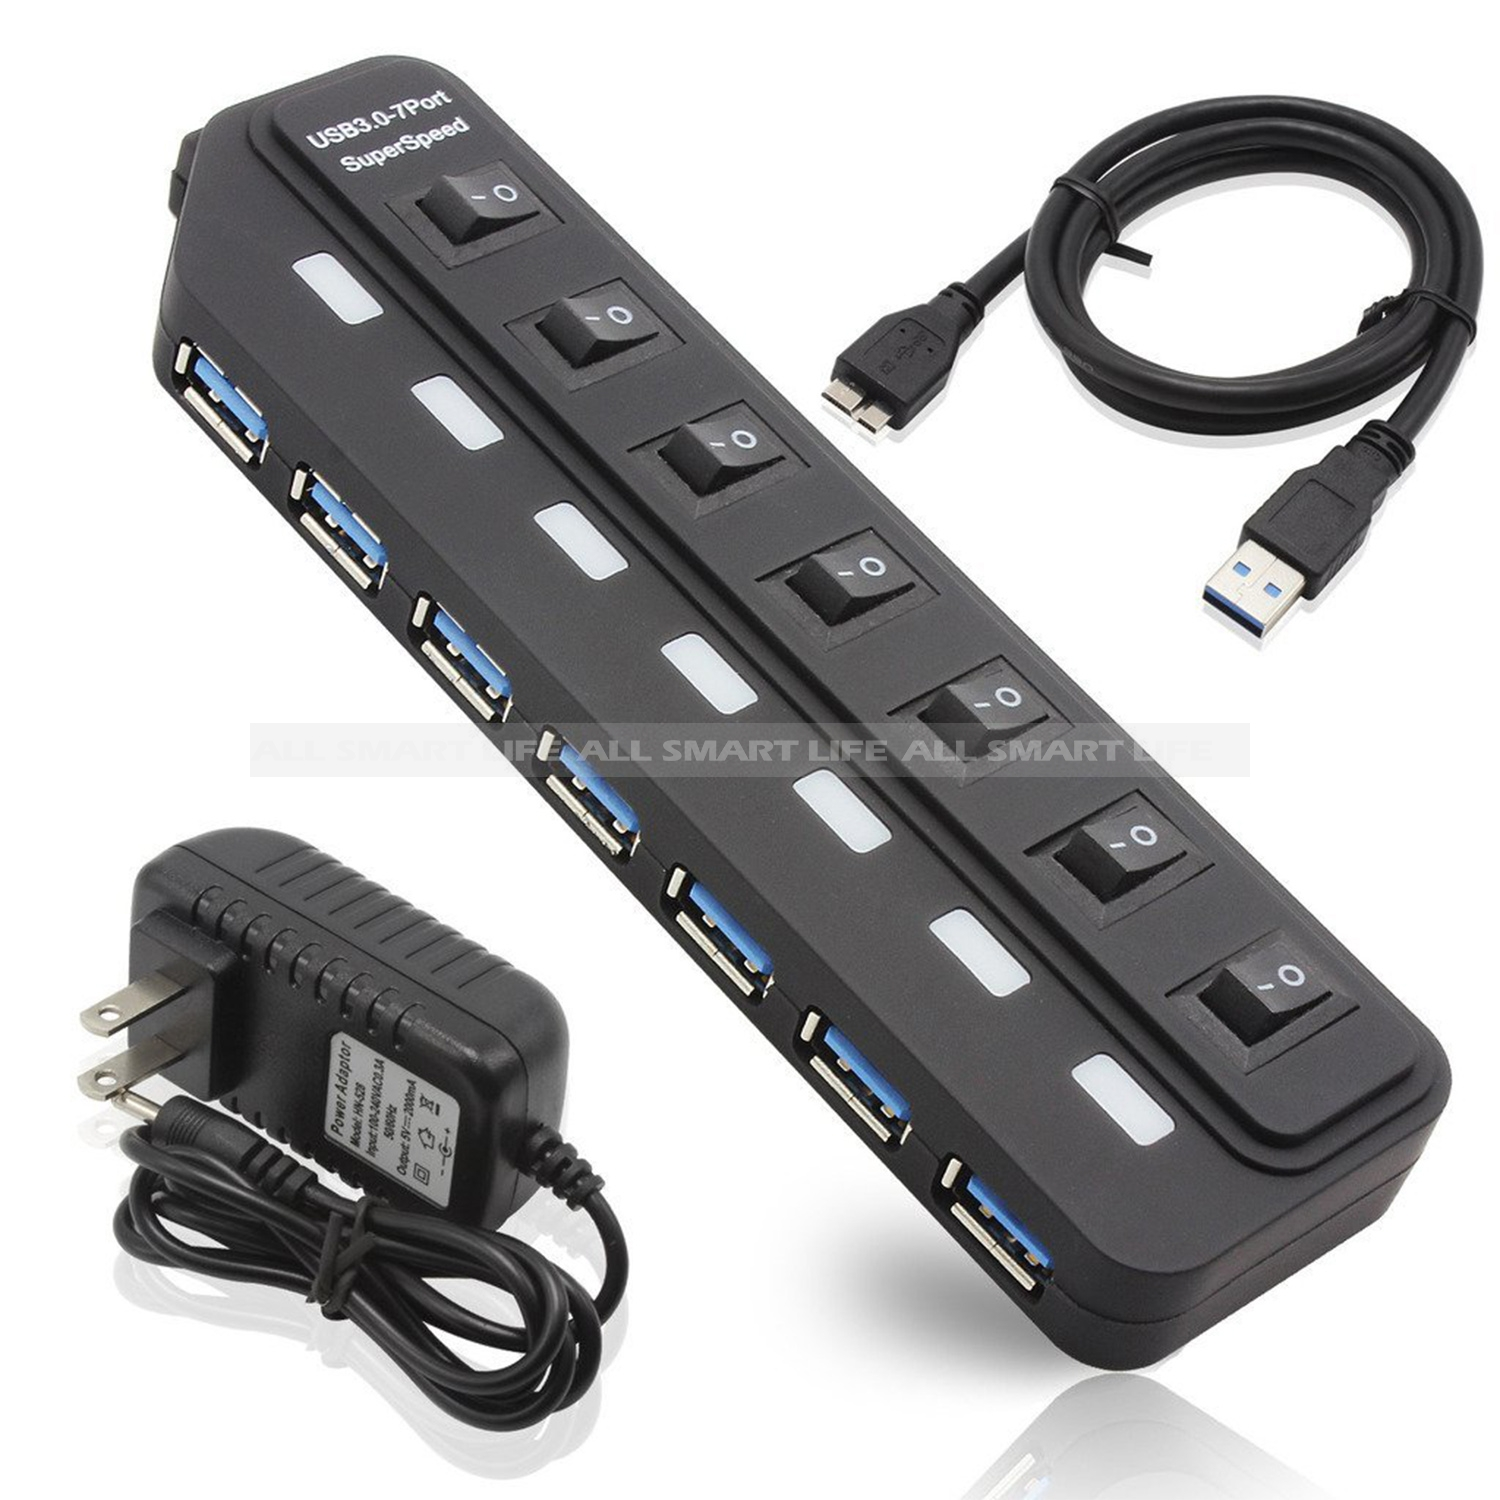 2016 New 7 Port Usb 3 0 Hub With 12v 3a Power Adapter And